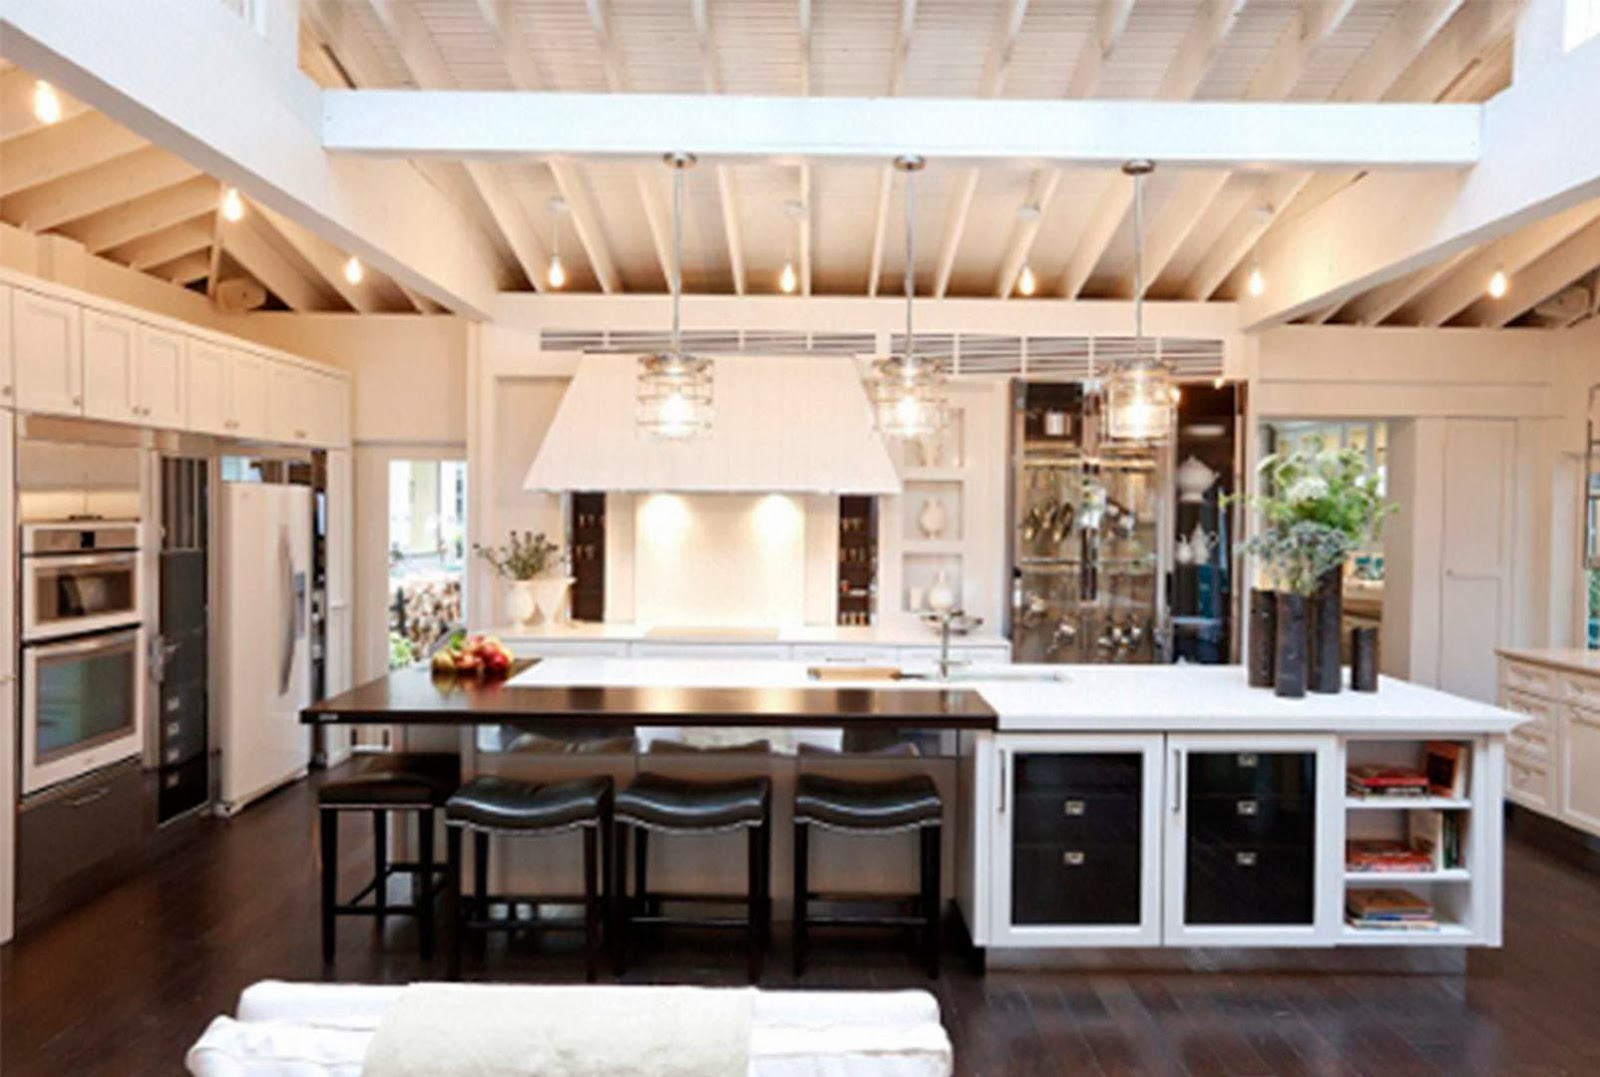 Contemporary kitchen design trends 2013 - Home Decorating Interior Design Ideas The Modern Look Of Glass Kitchen Countertops